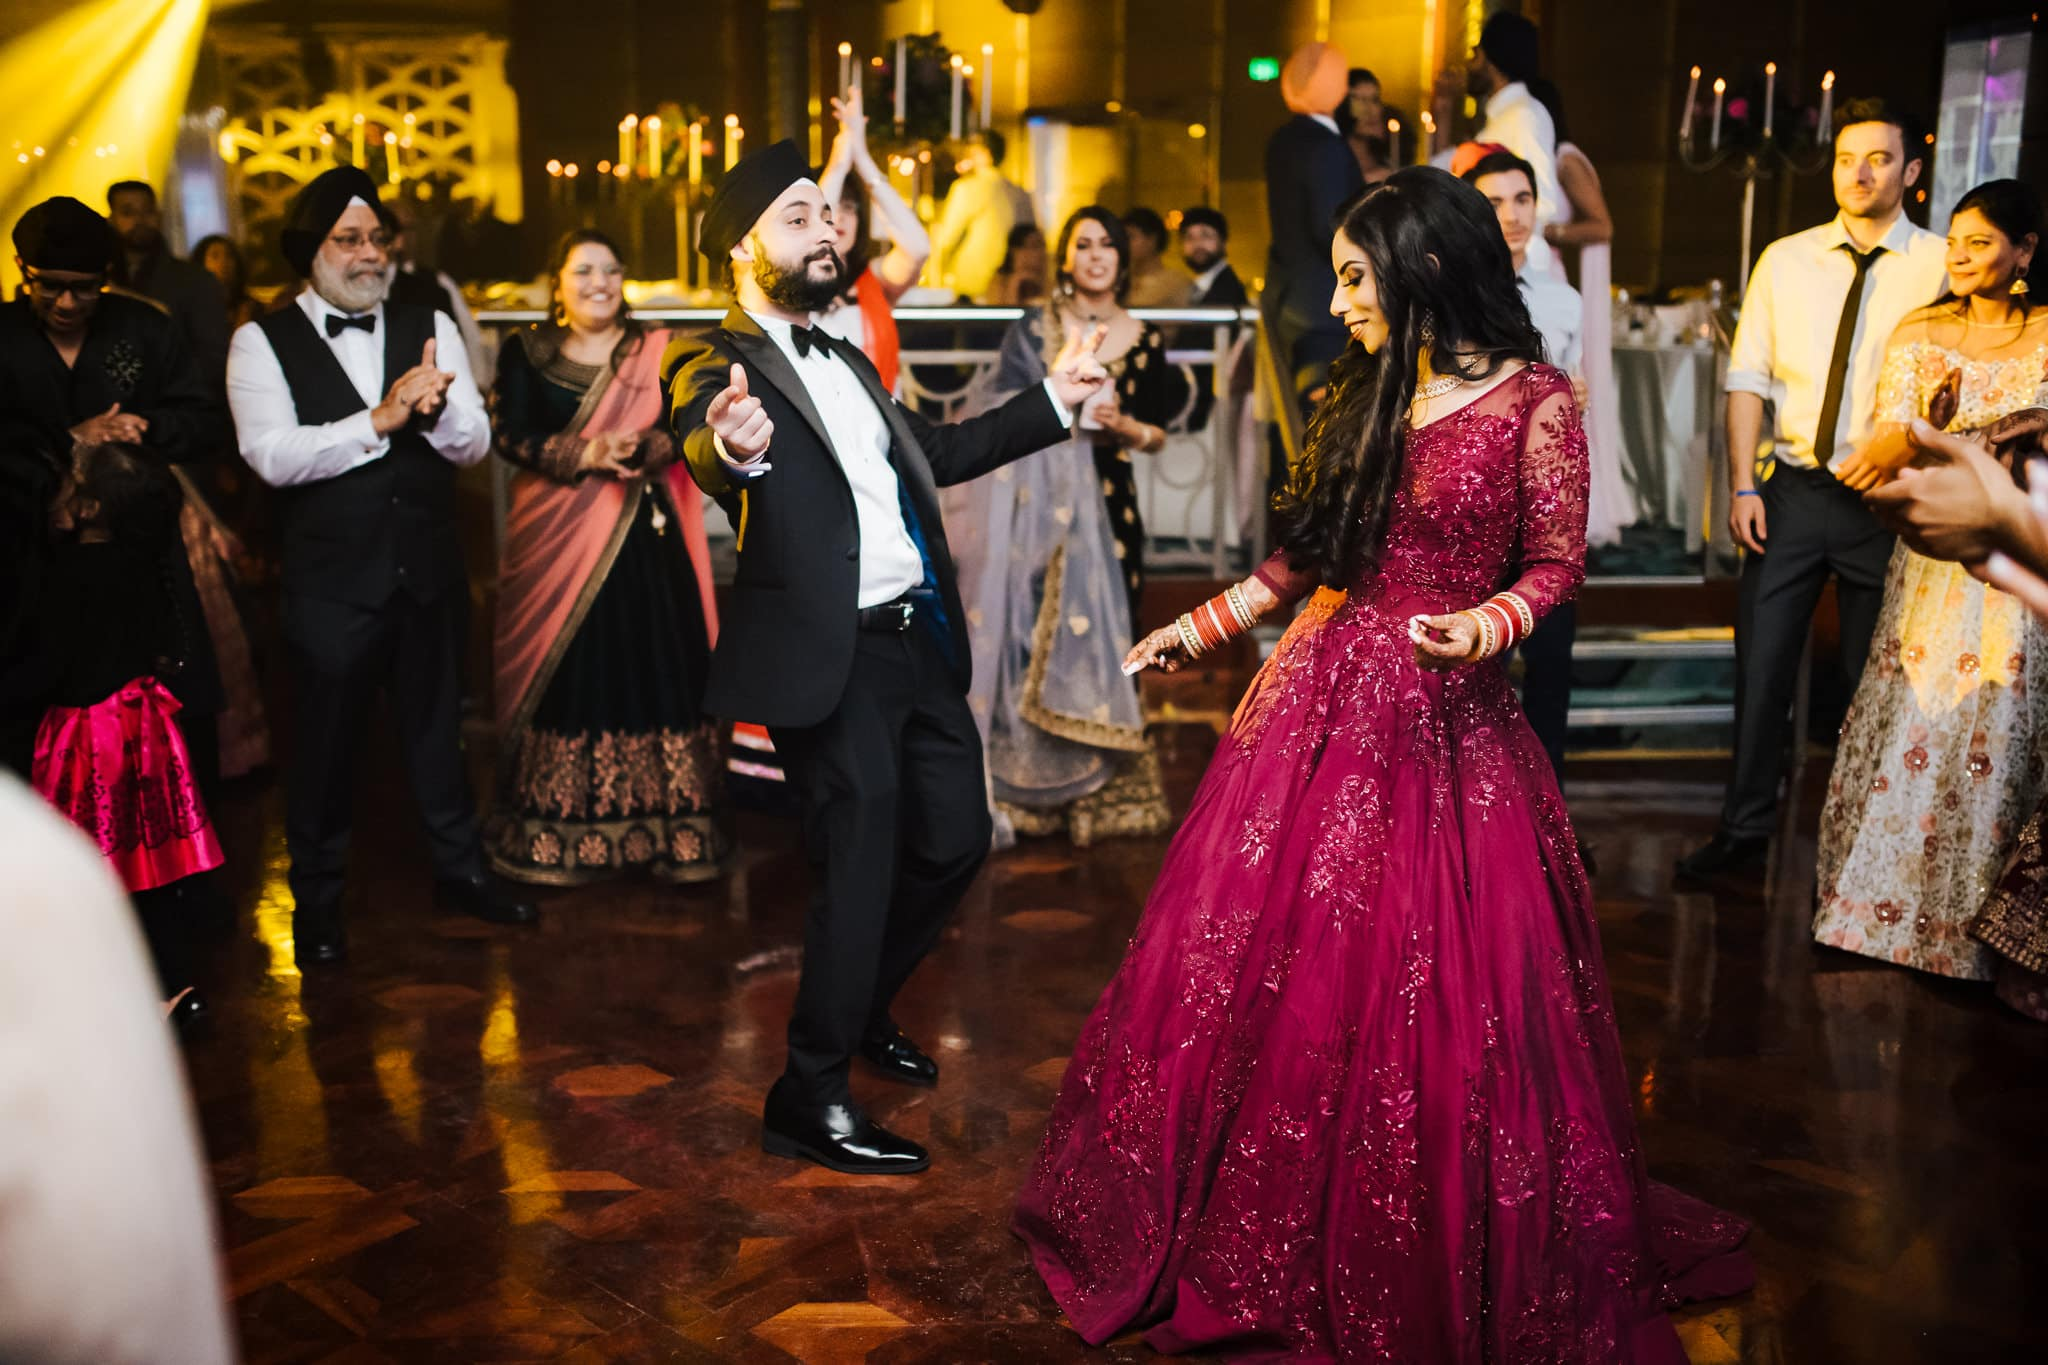 Melbourne couple, Simran and Anmol dancing at their wedding reception party at Park Hyatt Melbourne. Check out their beautiful and modern Sikh wedding celebration only on The Maharani Diaries.